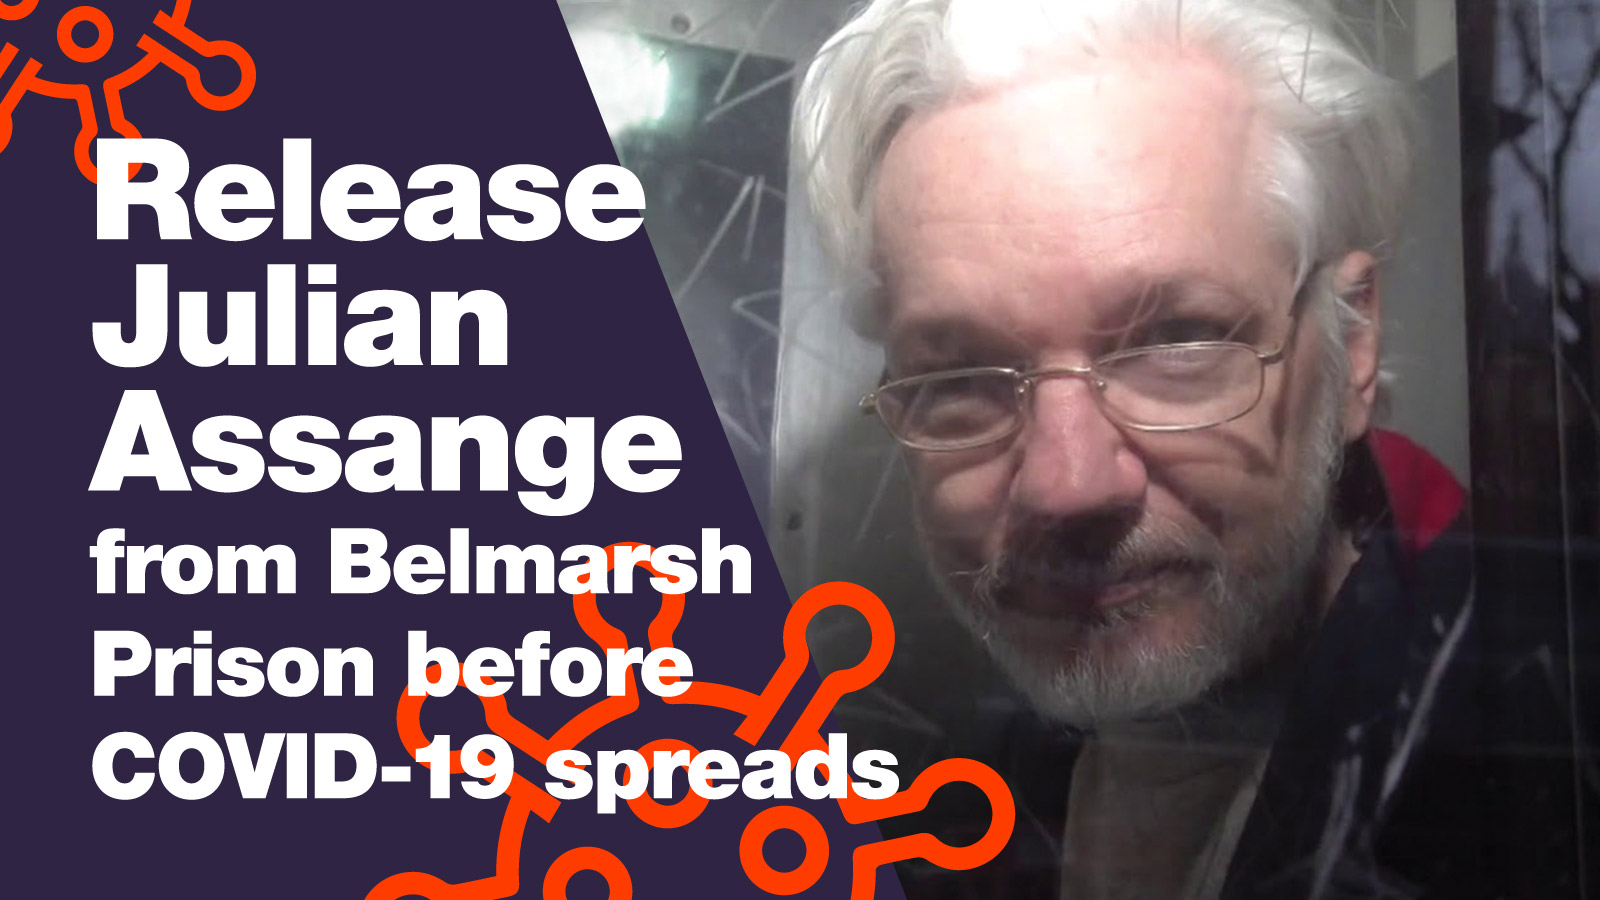 release-assange-covid19-petition1.jpg